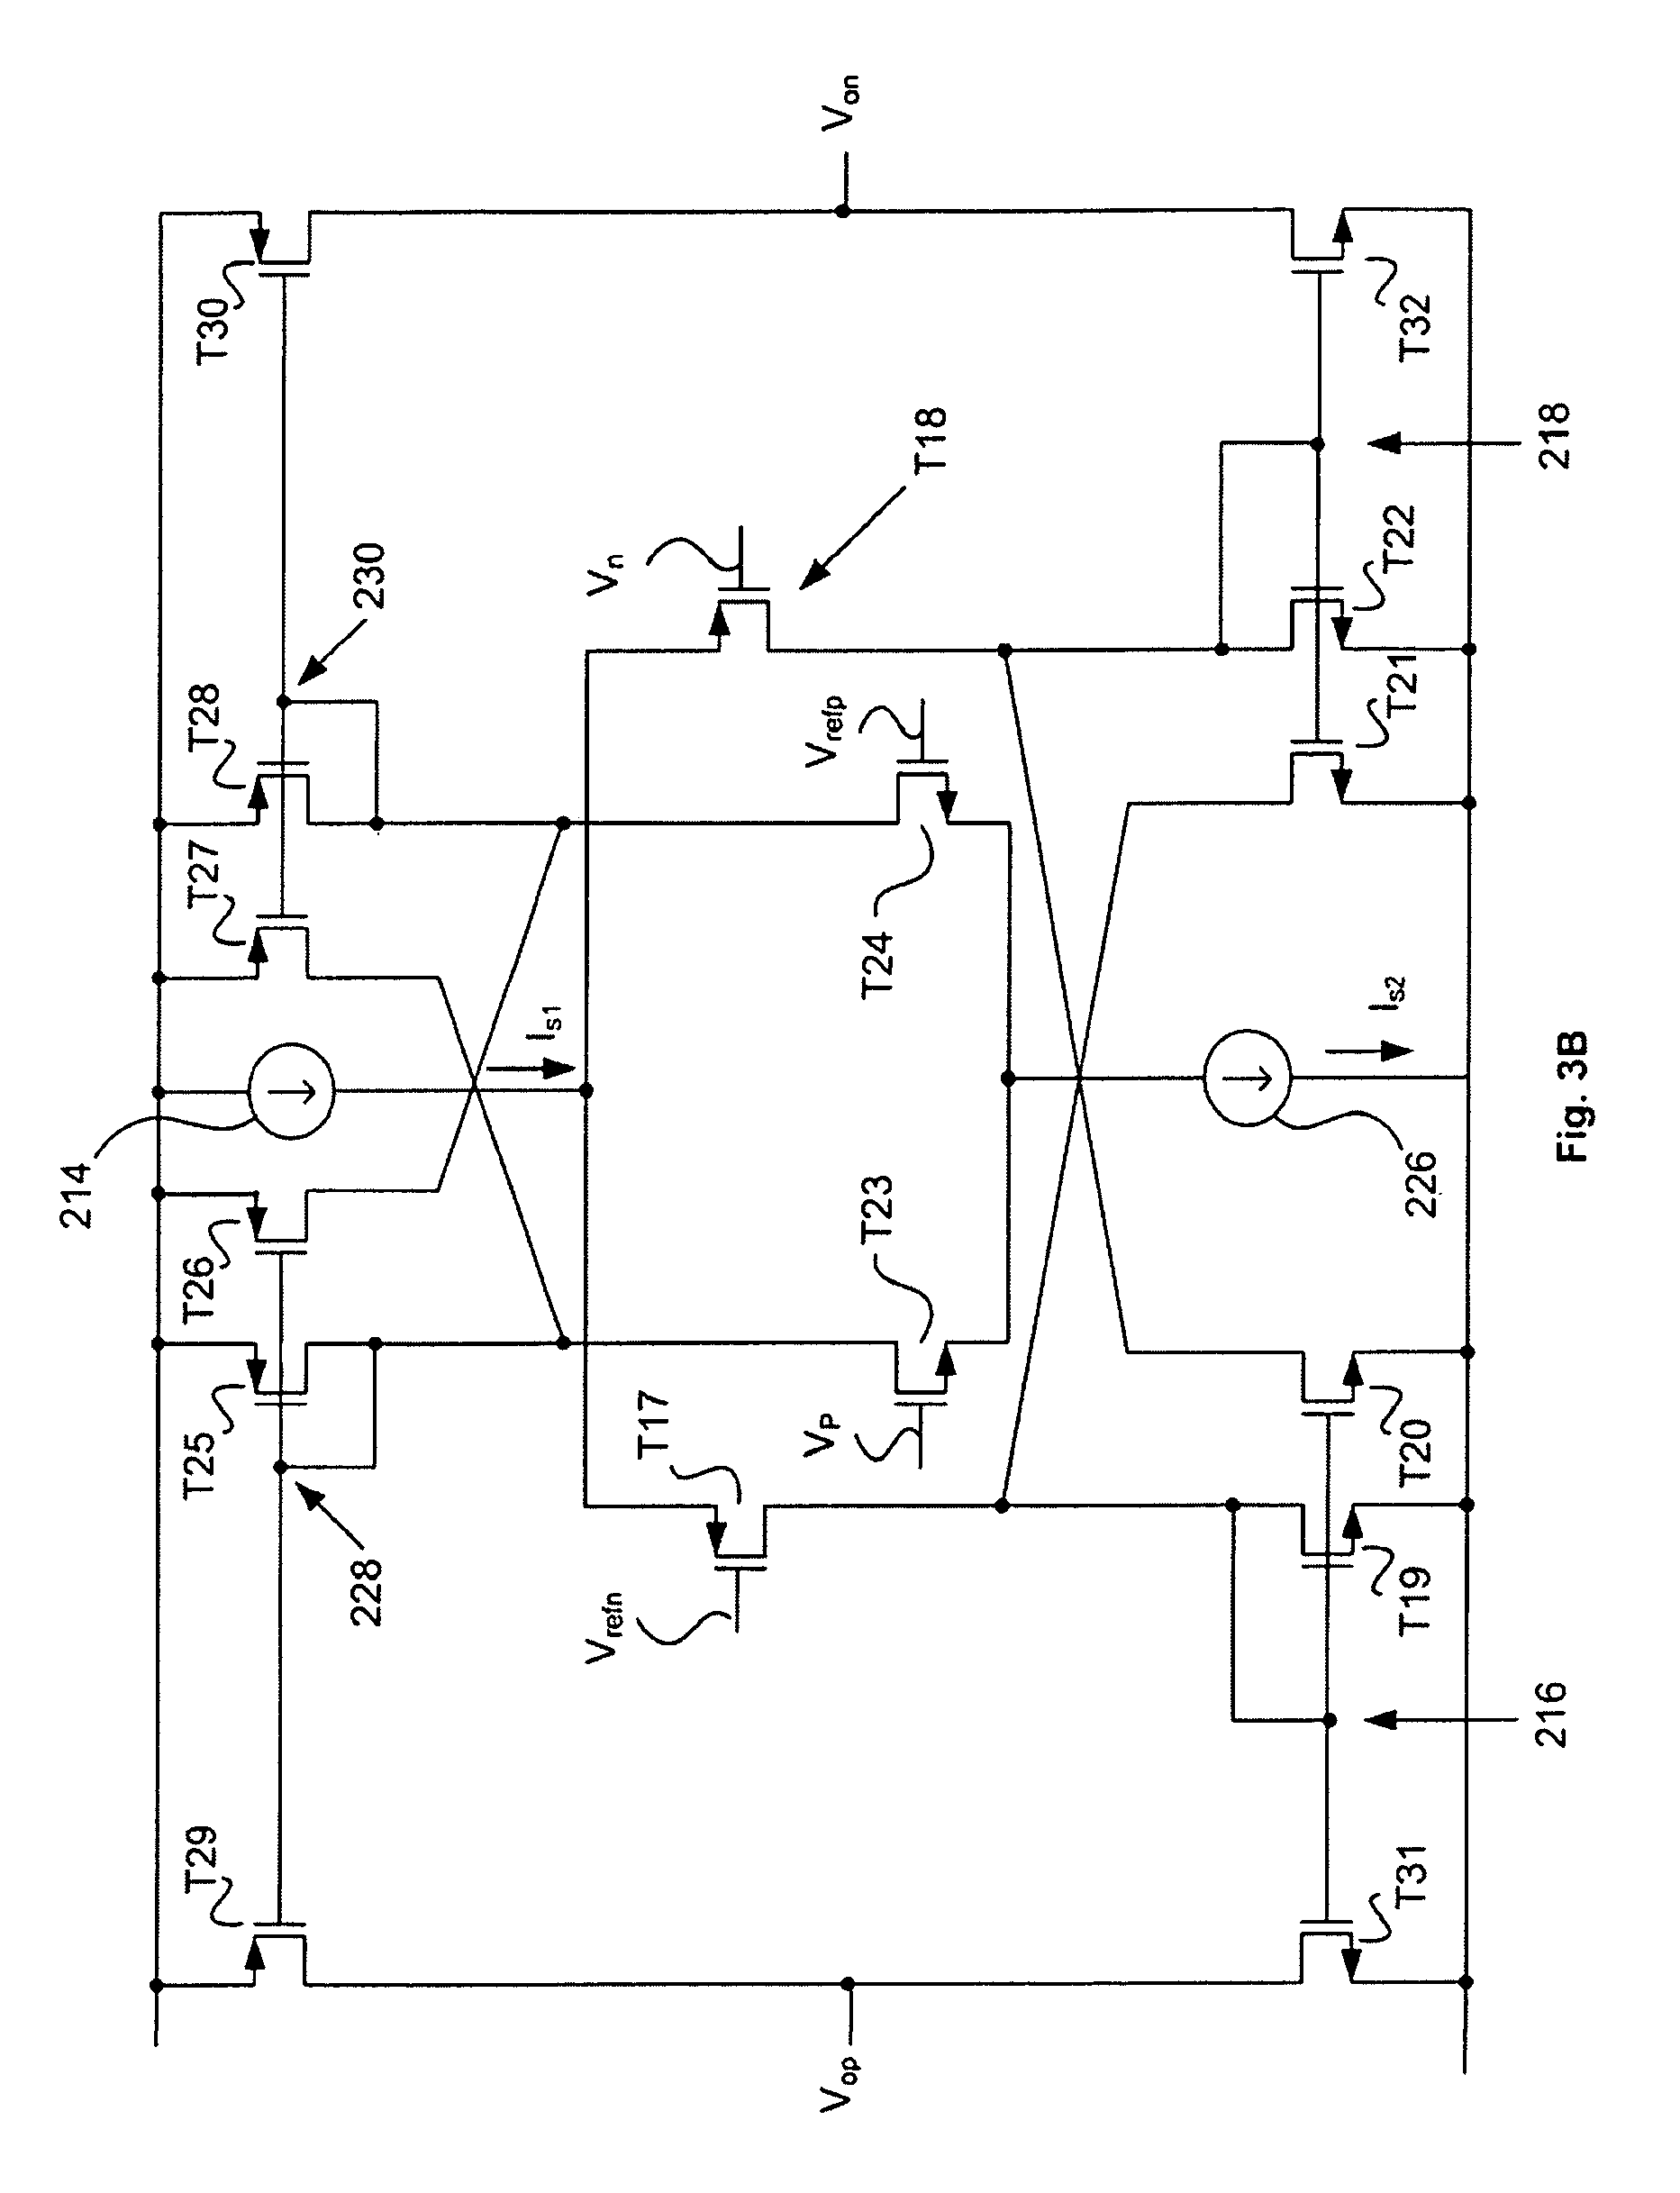 Comparator With Hysteresis Window Comparator Basic Comparator Circuits